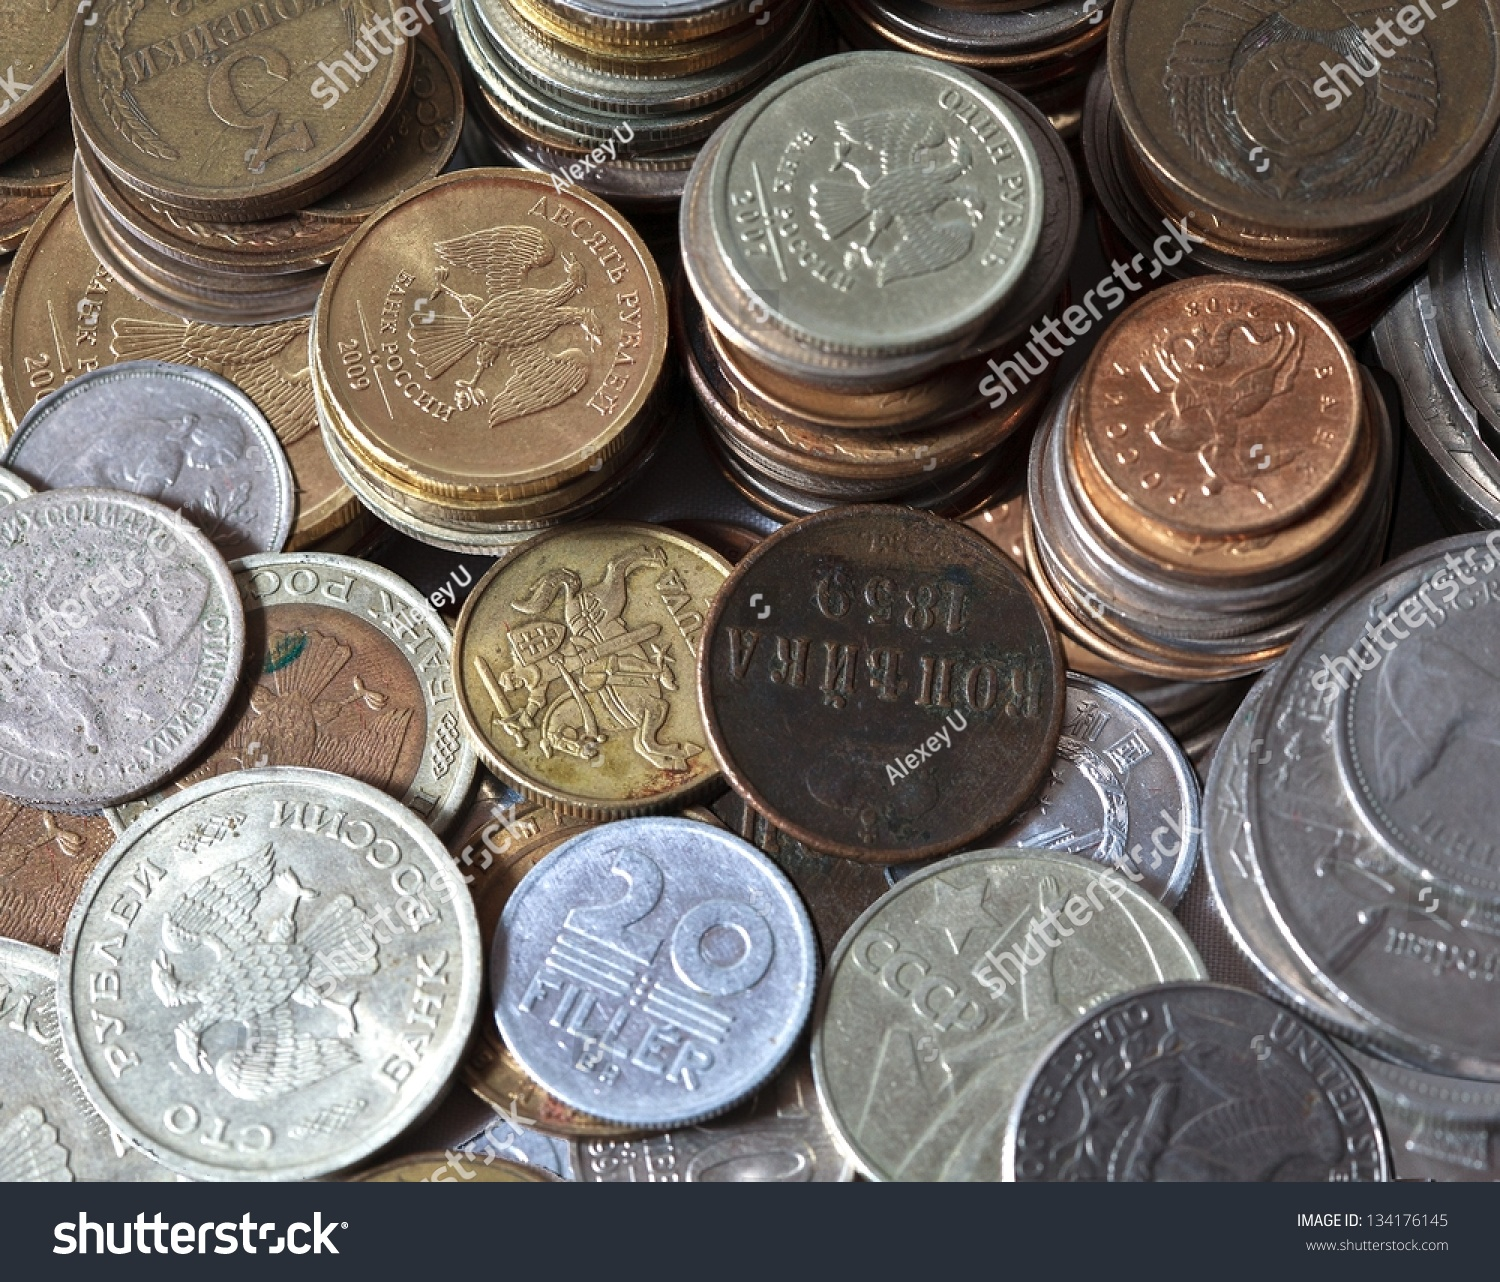 old coins stock image - photo #20